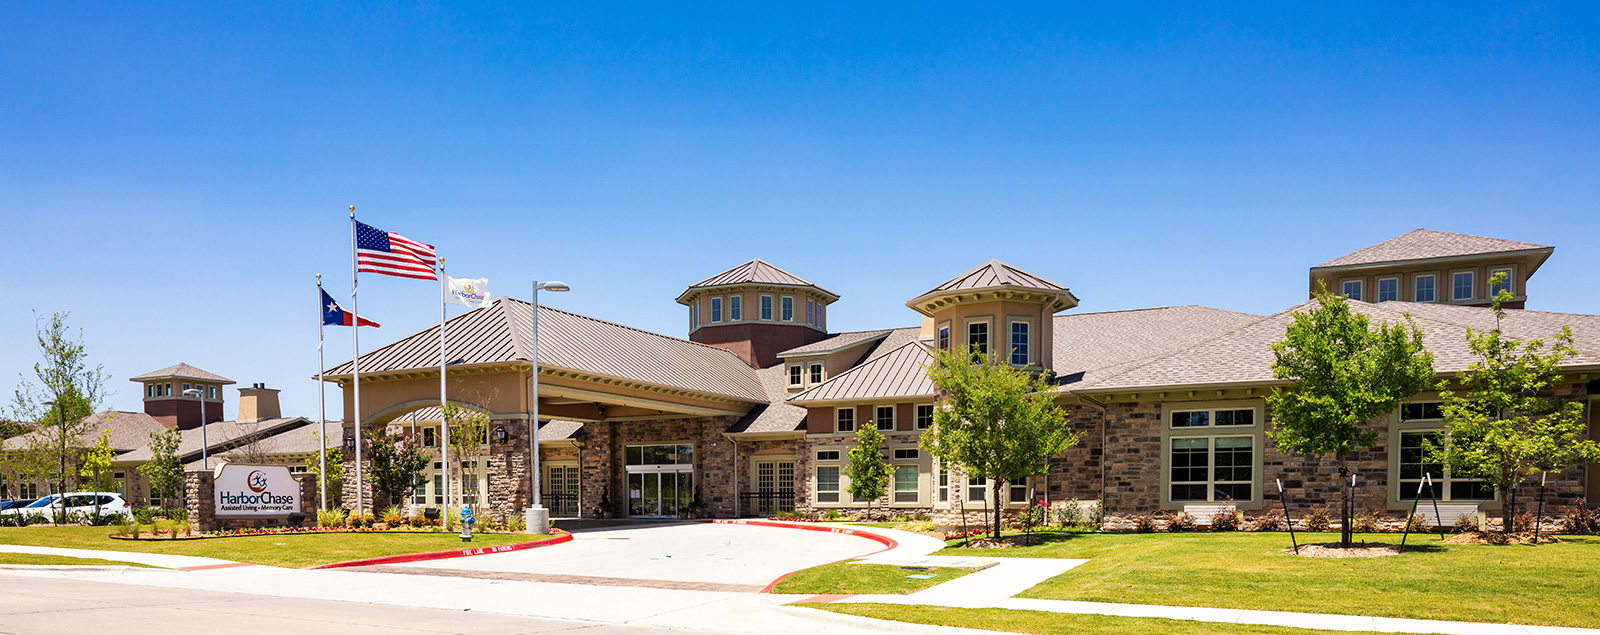 Photo gallery of Senior Living in McKinney